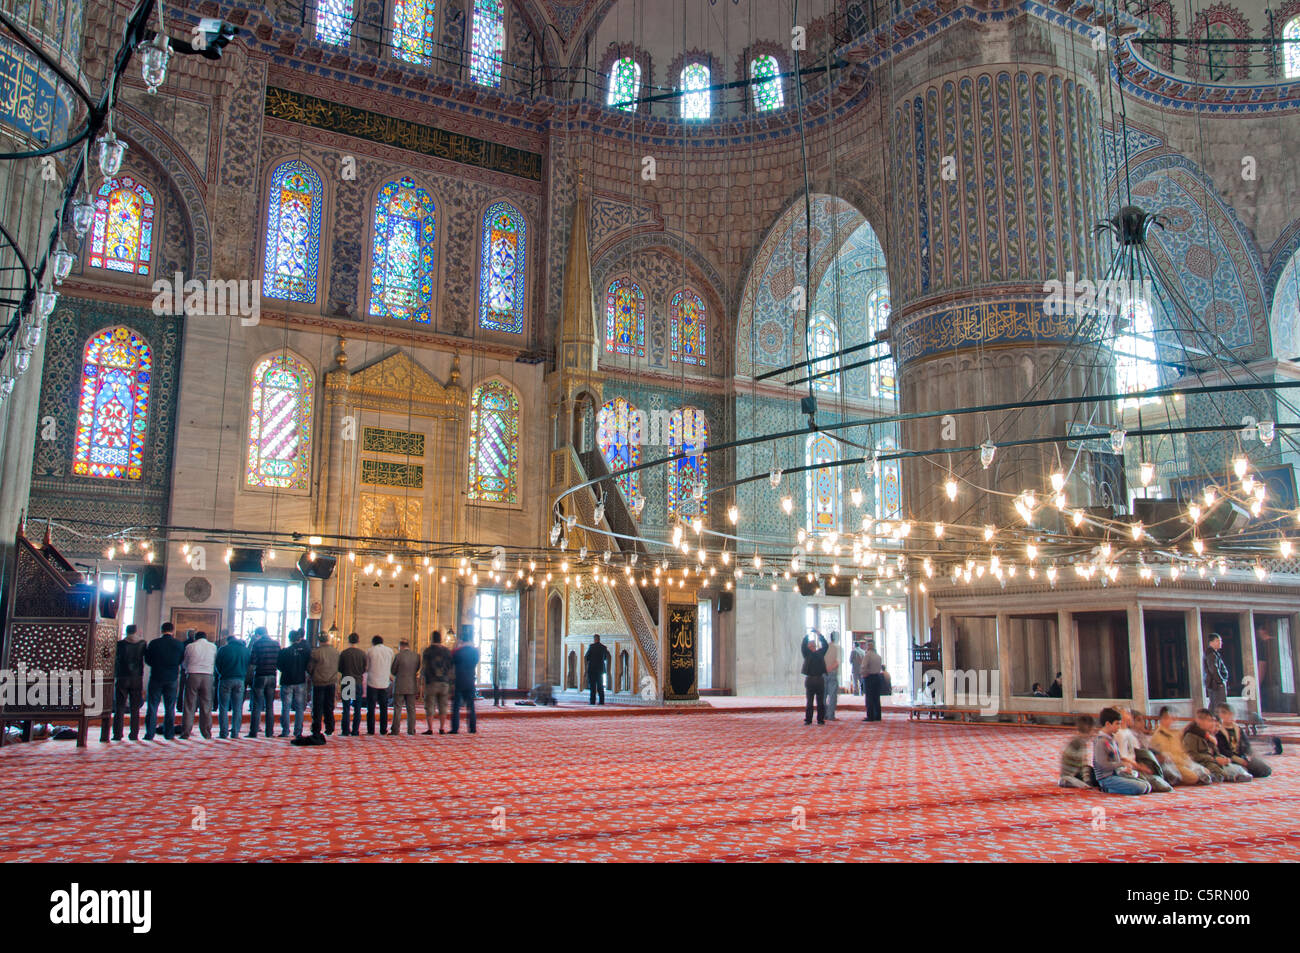 The main prayer hall, The Blue Mosque, Istanbul, Turkey - Stock Image